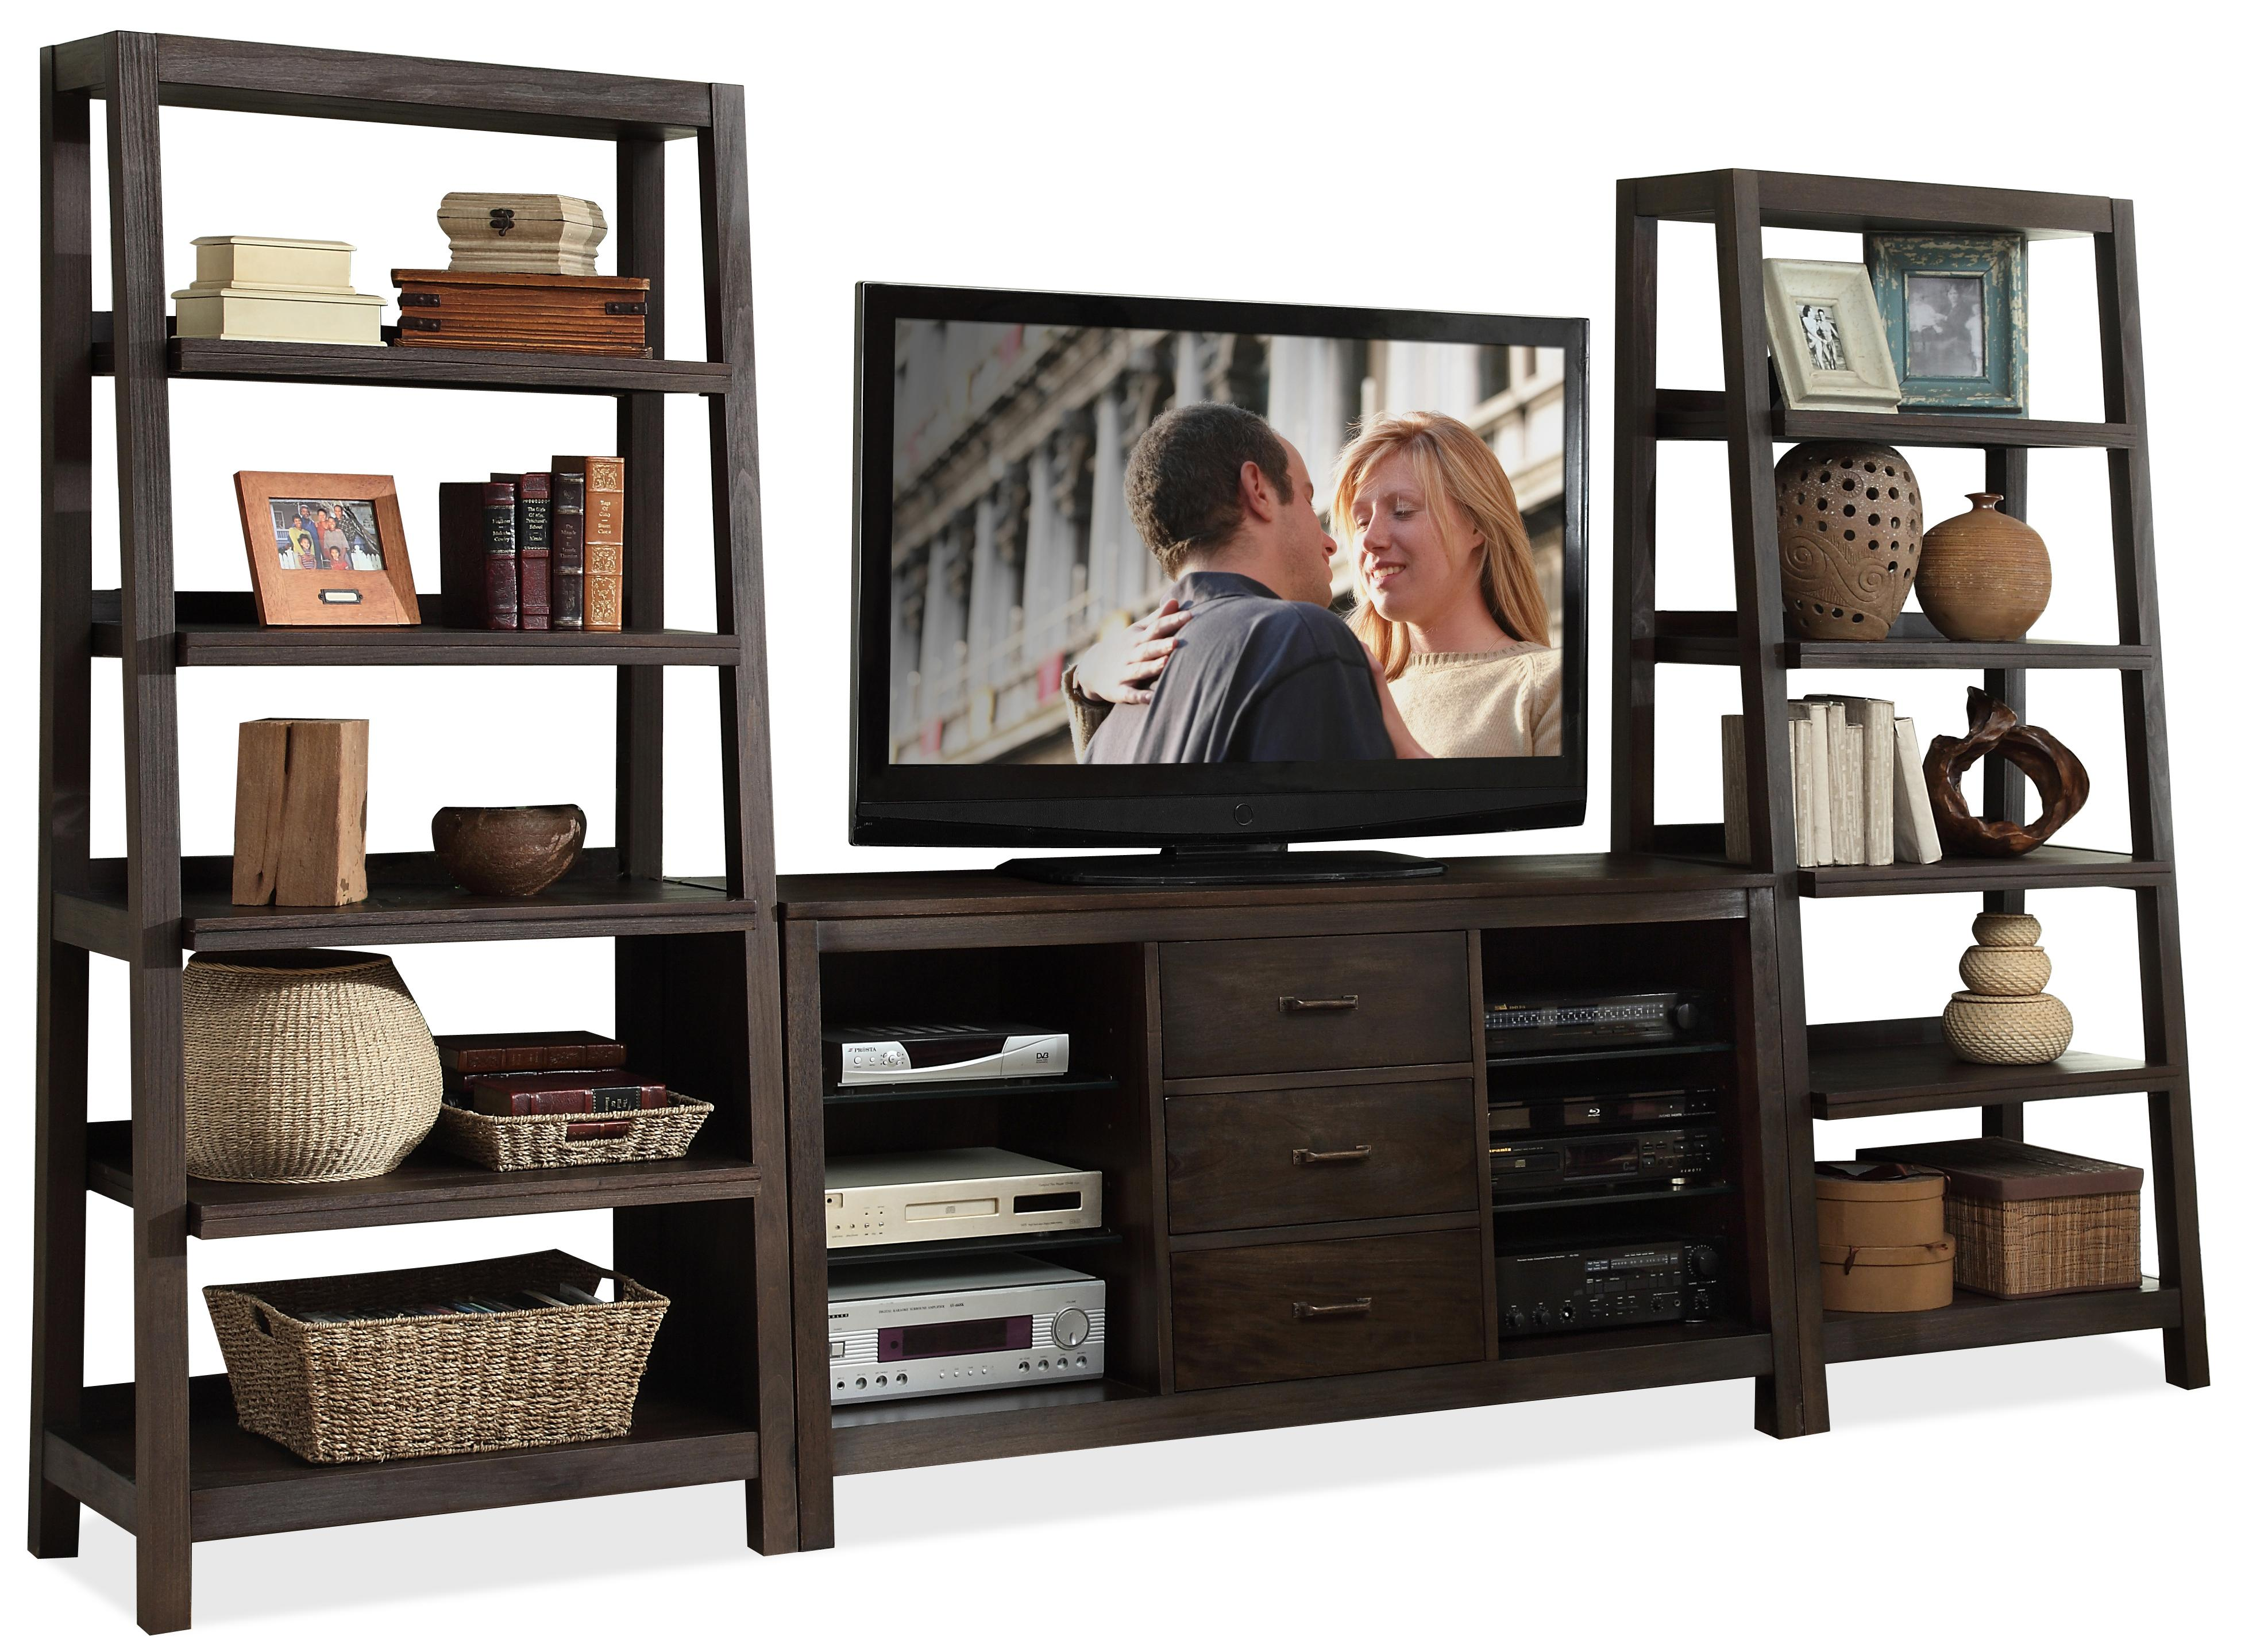 Riverside Furniture Promenade 84541+2x37 Canted Entertainment Wall ...